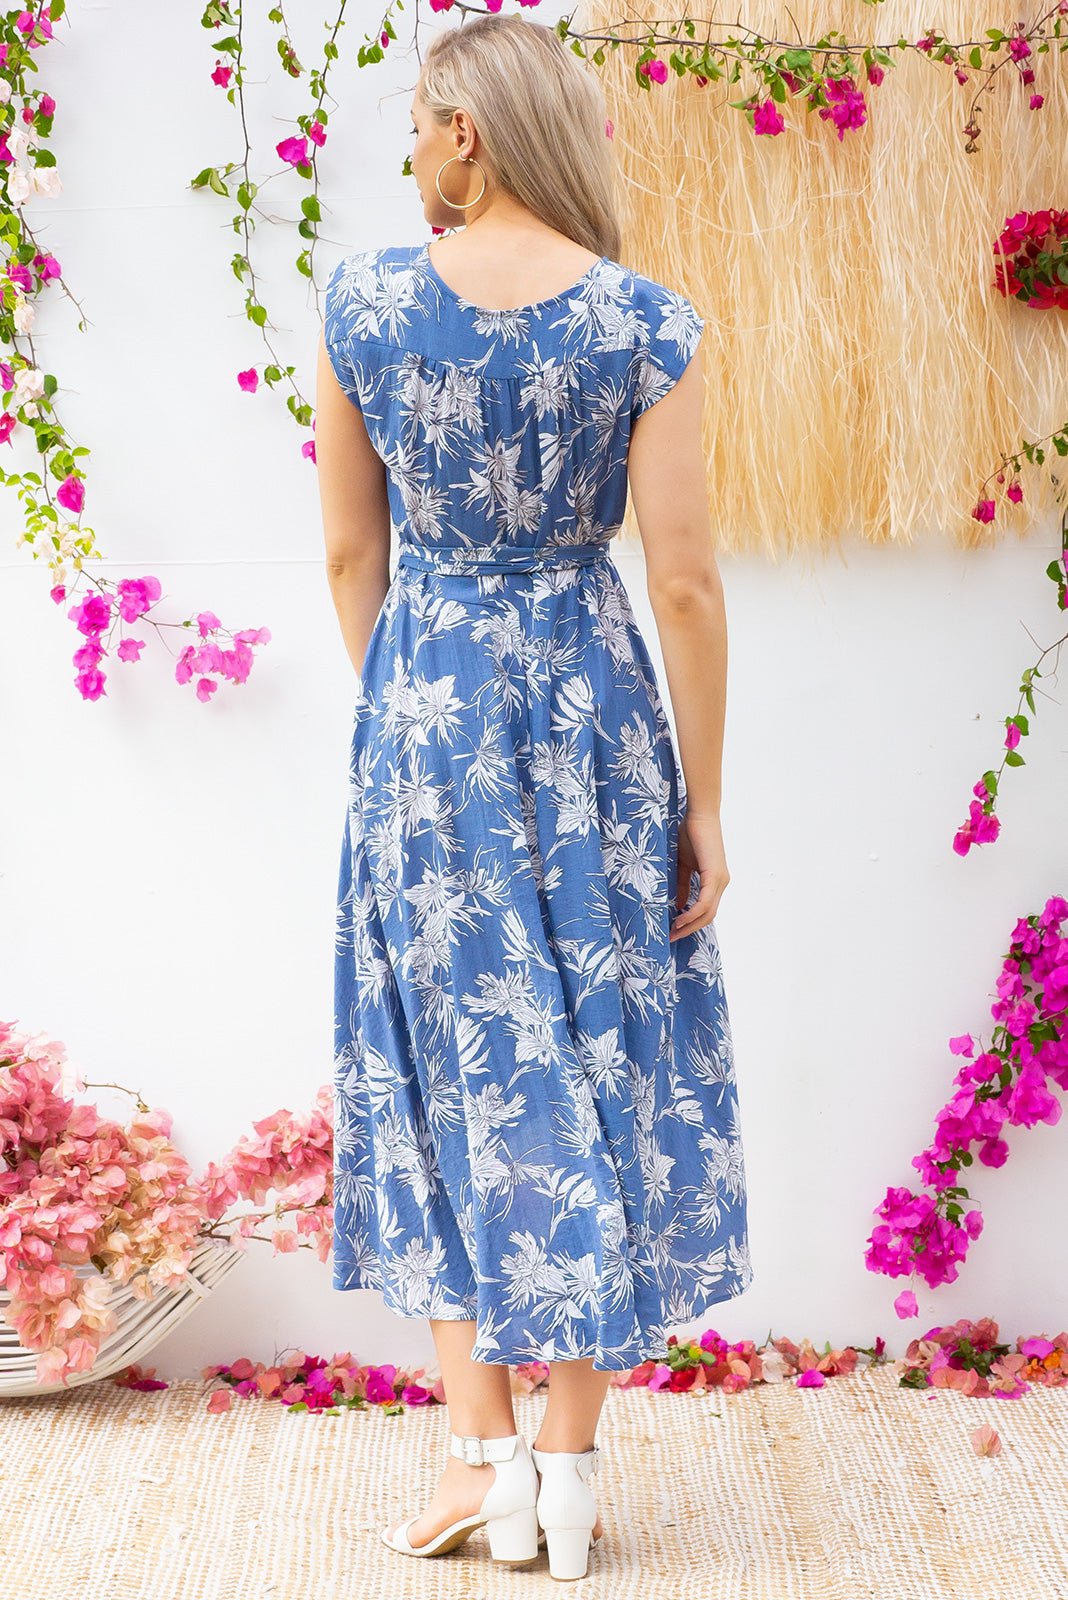 Florence Blue Island Wrap Dress featuring a fitted cross over bust and flirty skirt with side pocket  in a  blue floral print on a ripple textured polyester blend fabric